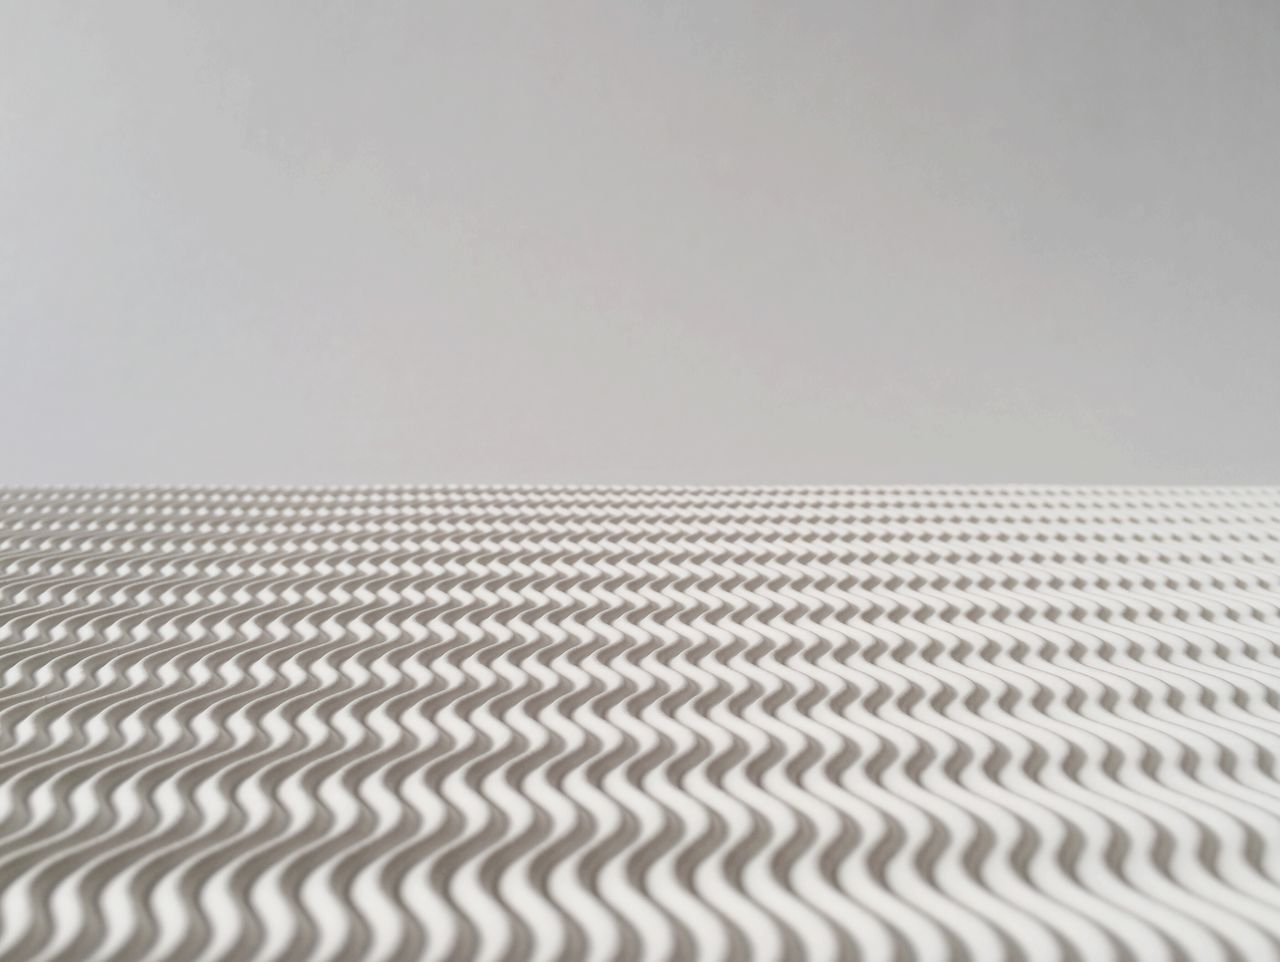 Pattern against gray background